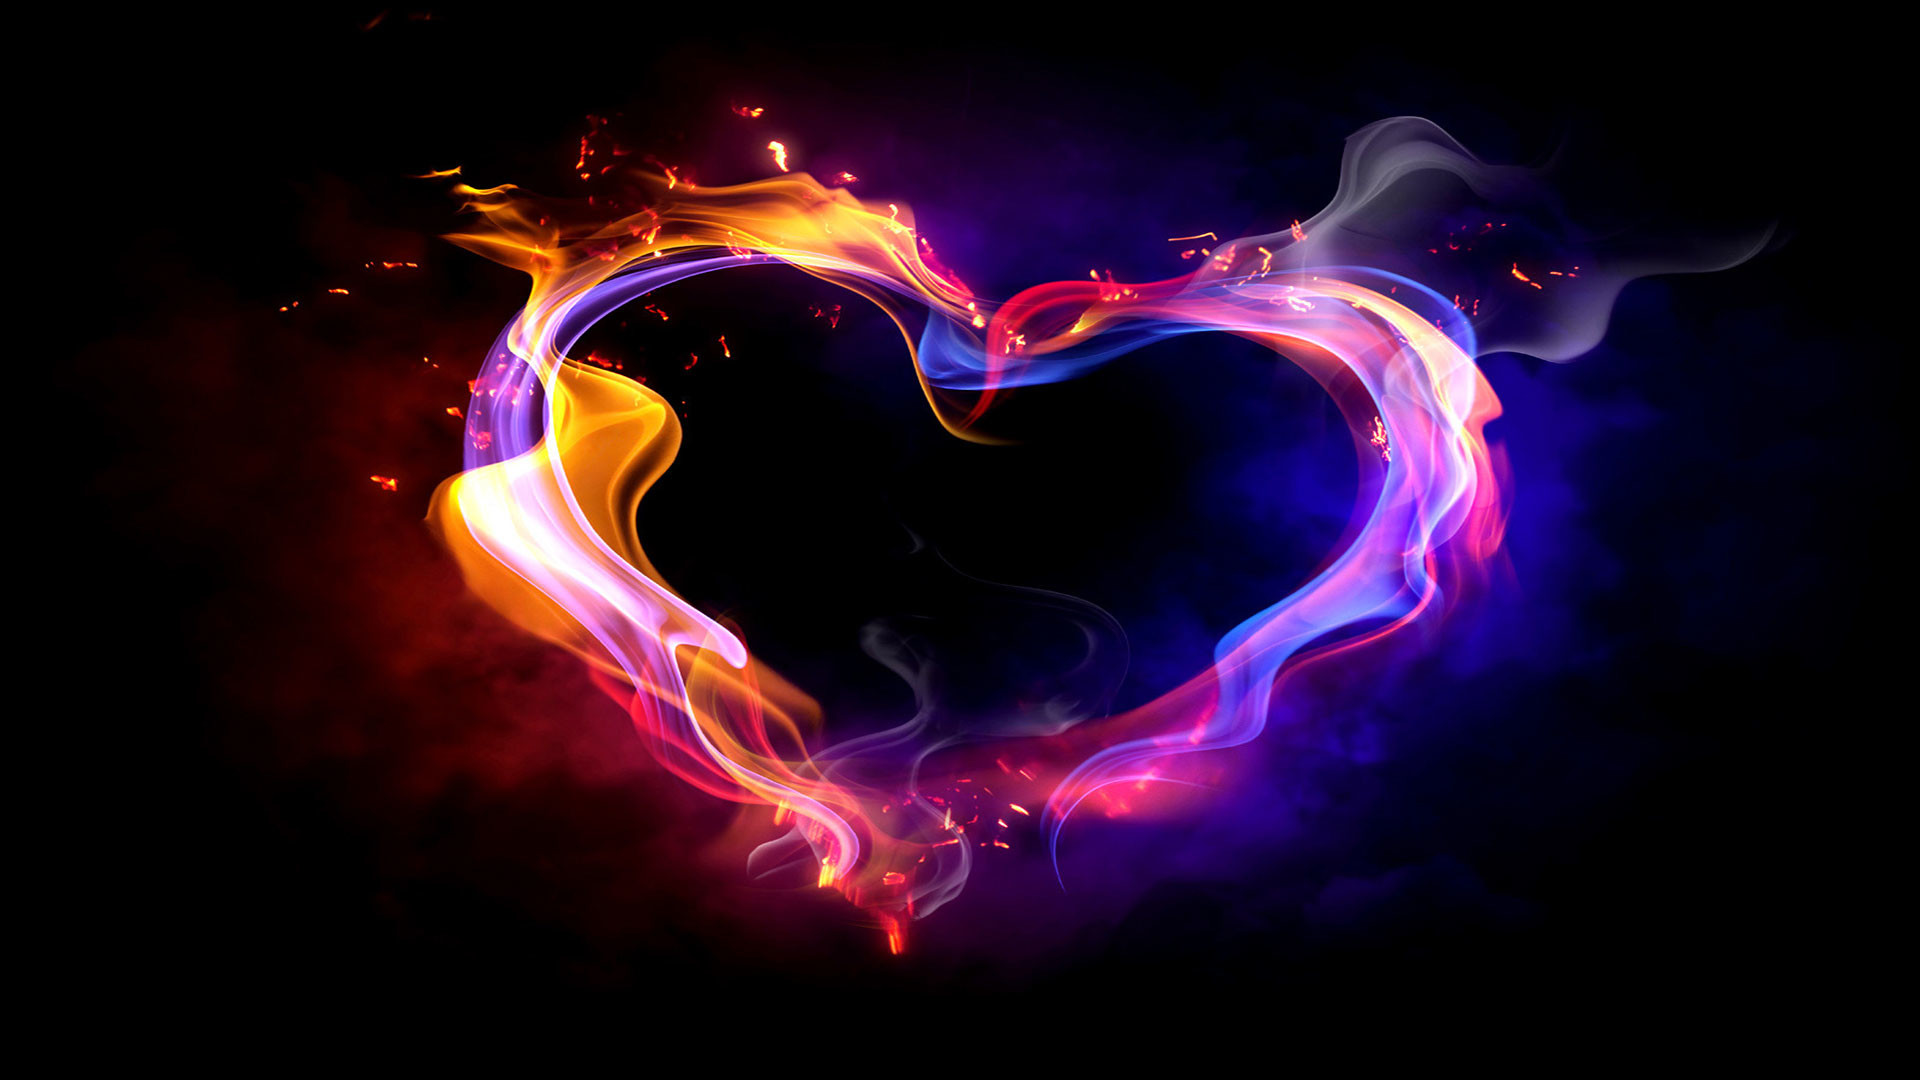 colorful-smoke-heart-20818-hd-widescreen-wallpapers Download Colorful .